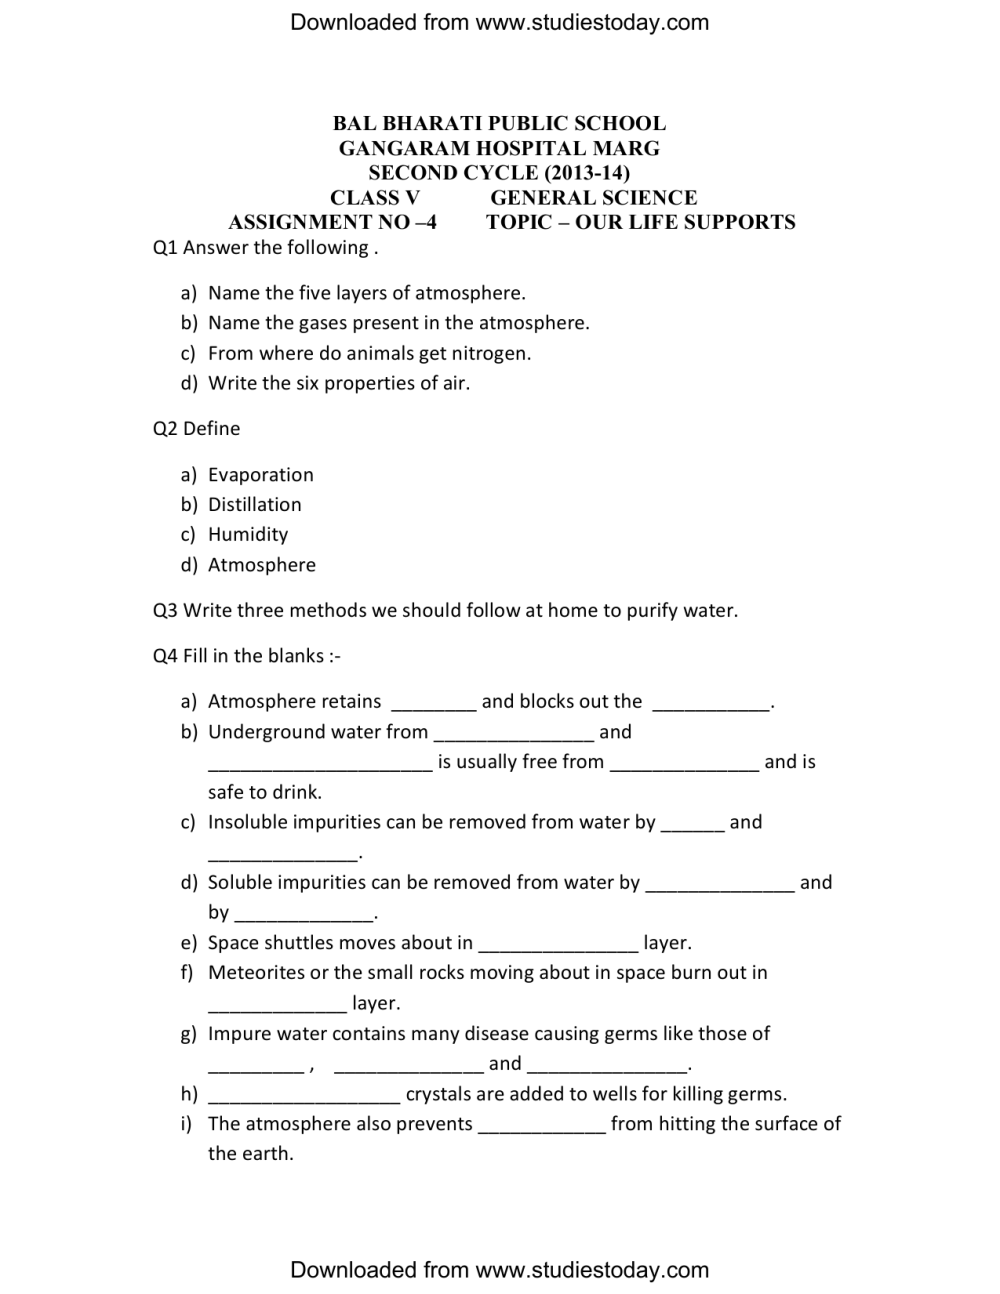 medium resolution of CBSE Class 5 Science Worksheets (4)